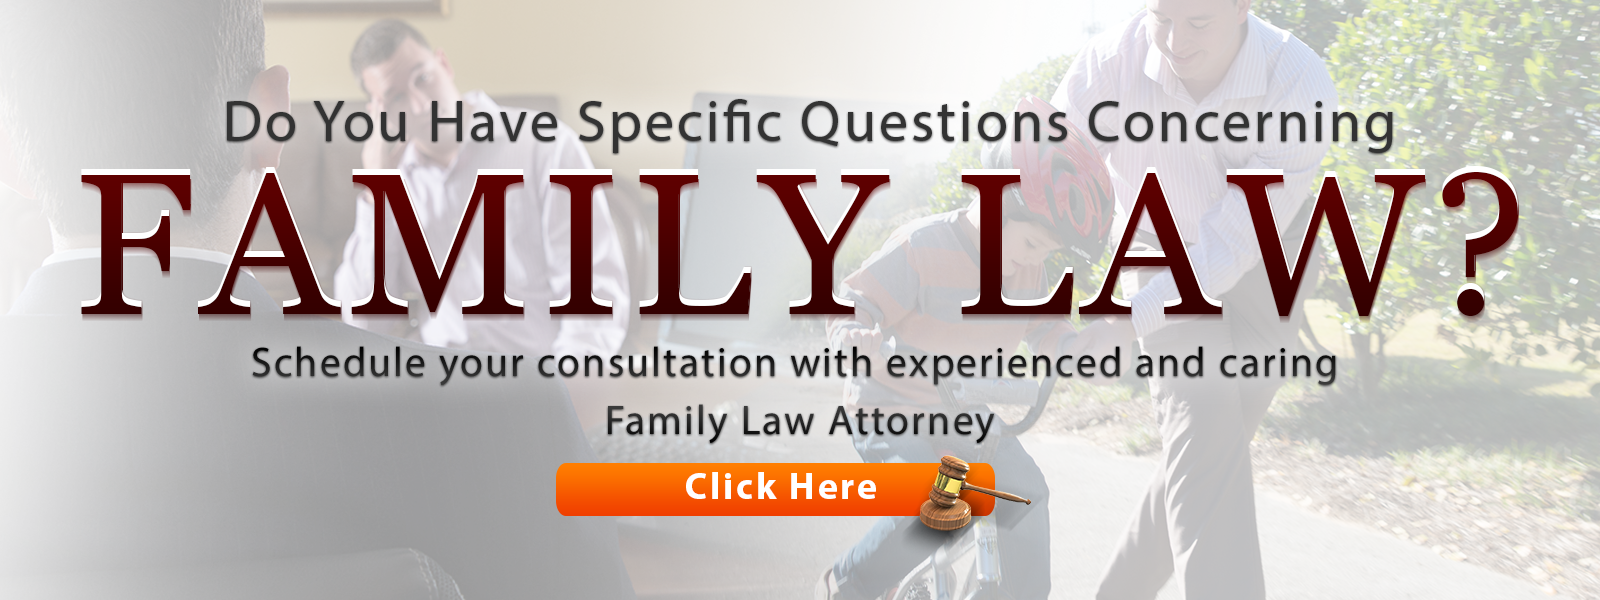 Private: Primary Family Law Contact Form